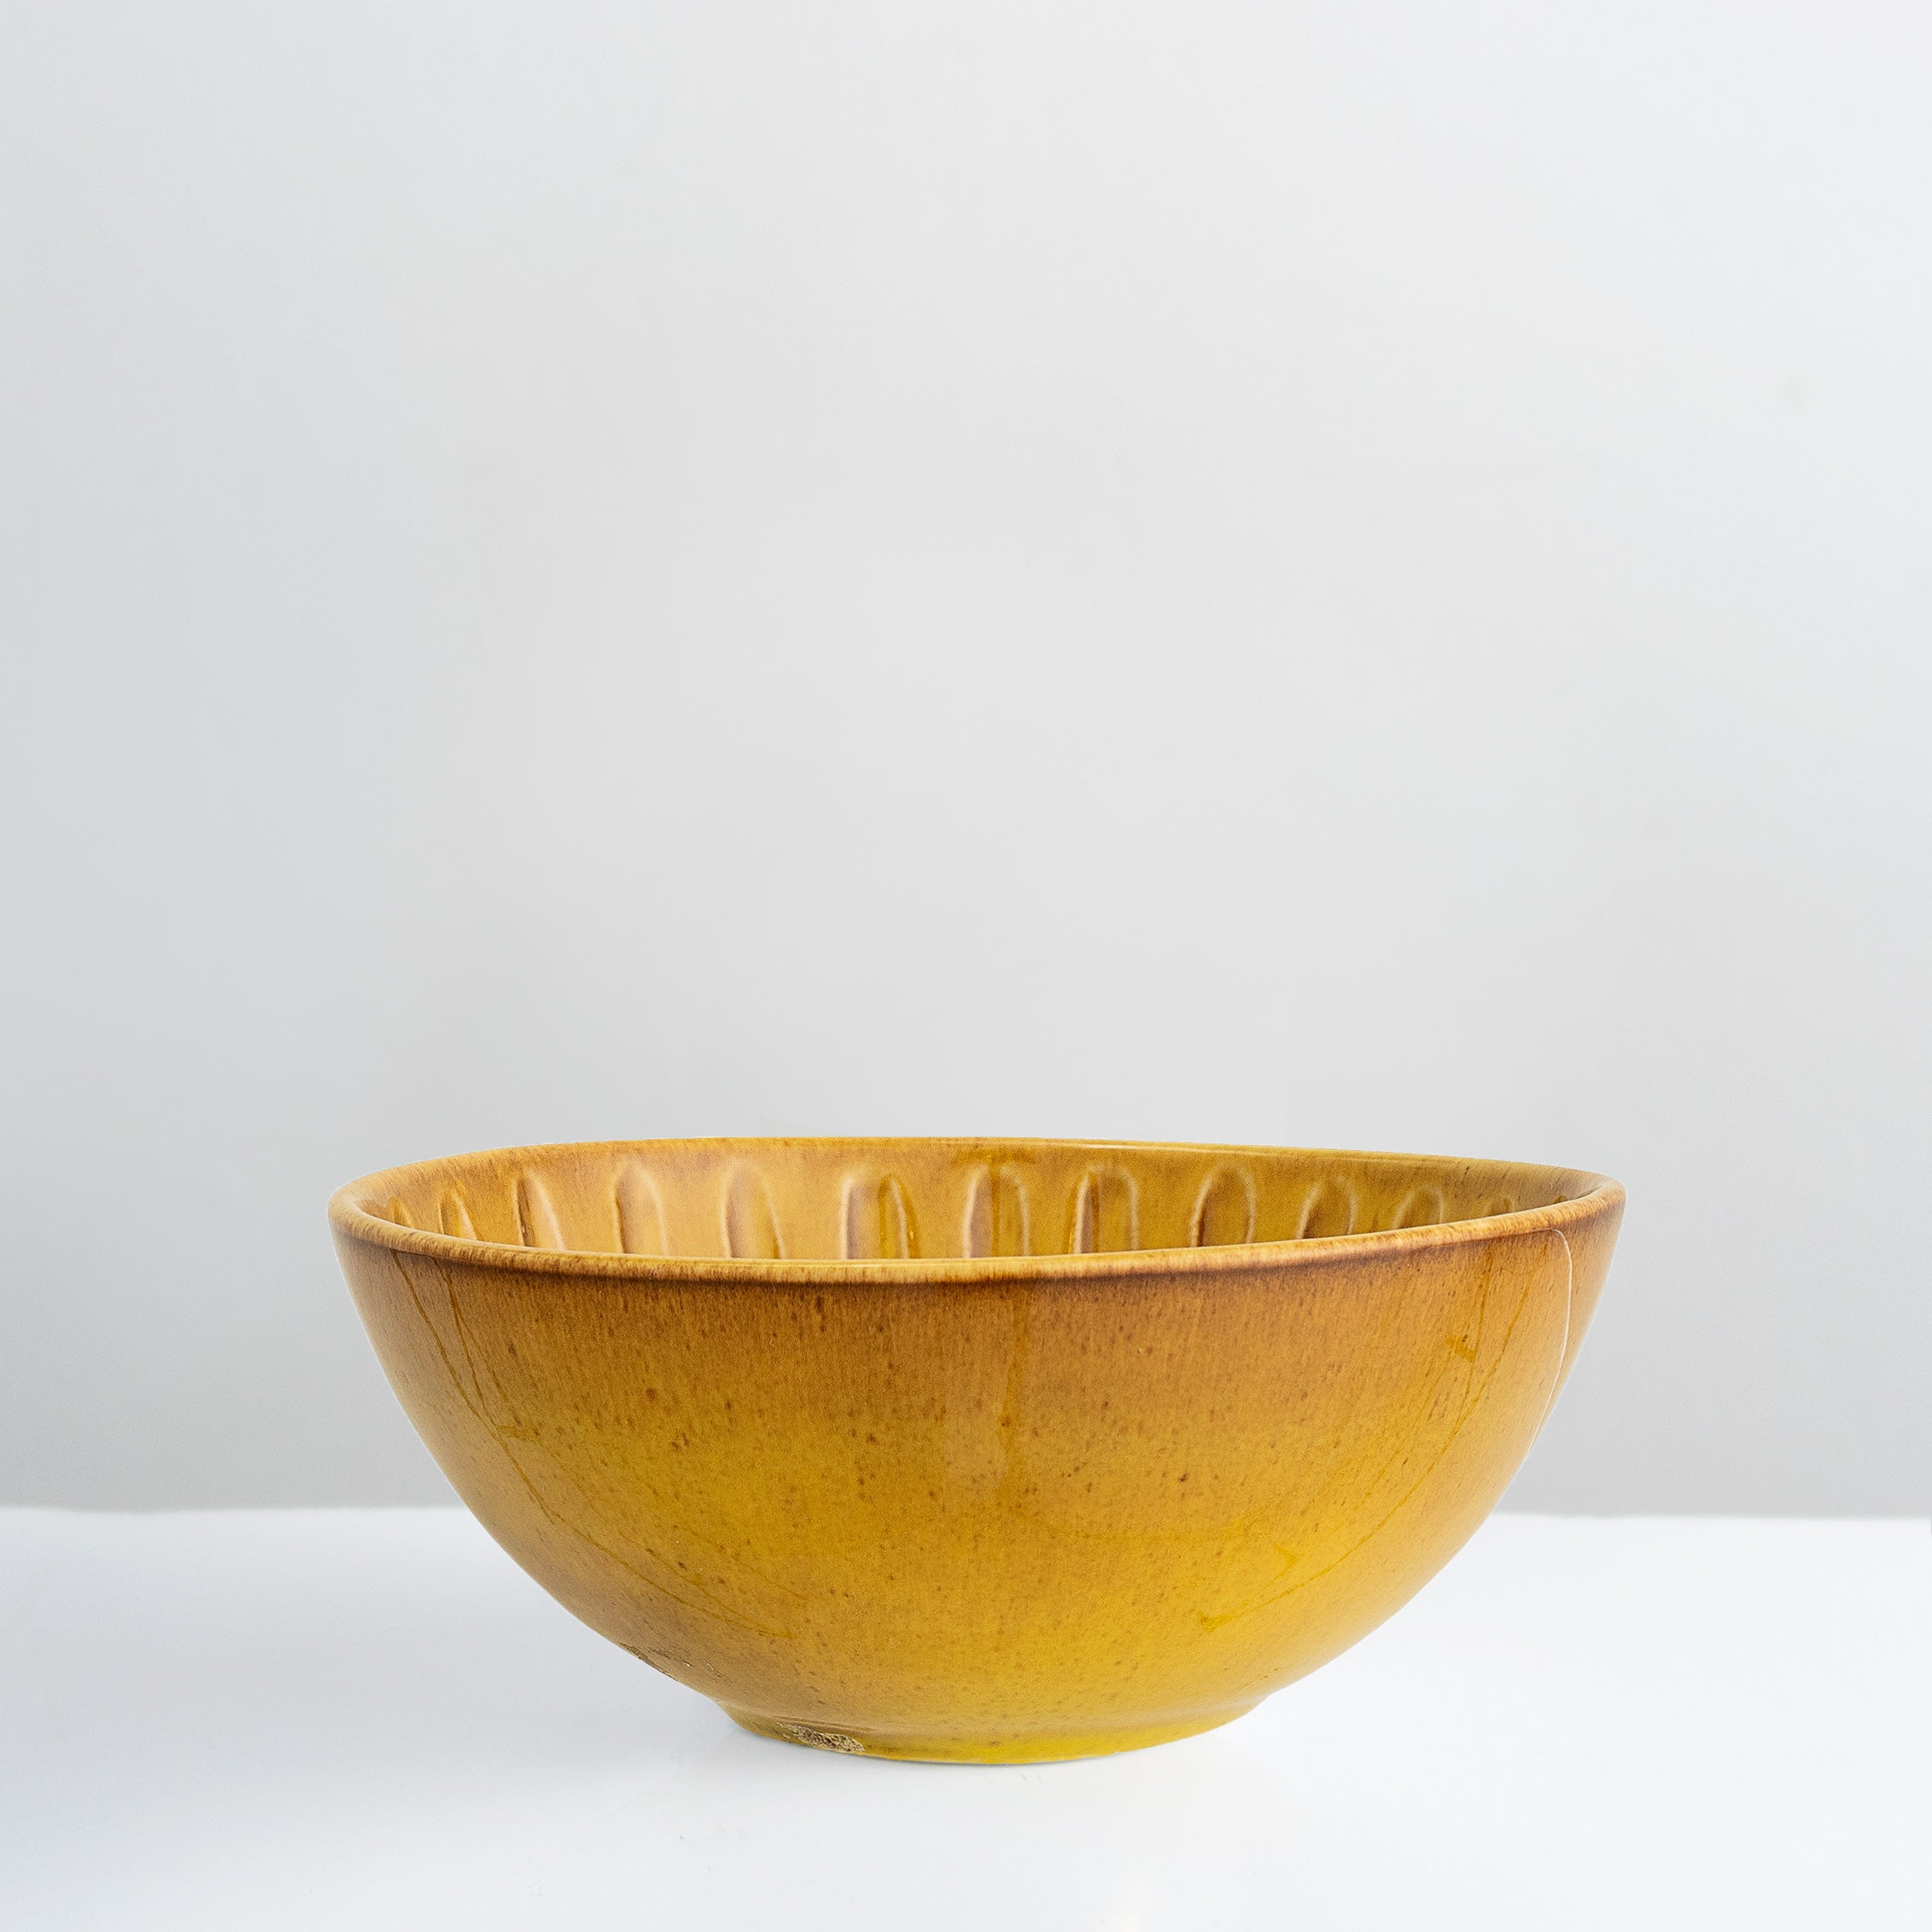 Handmade yellow glazed Cala bowl